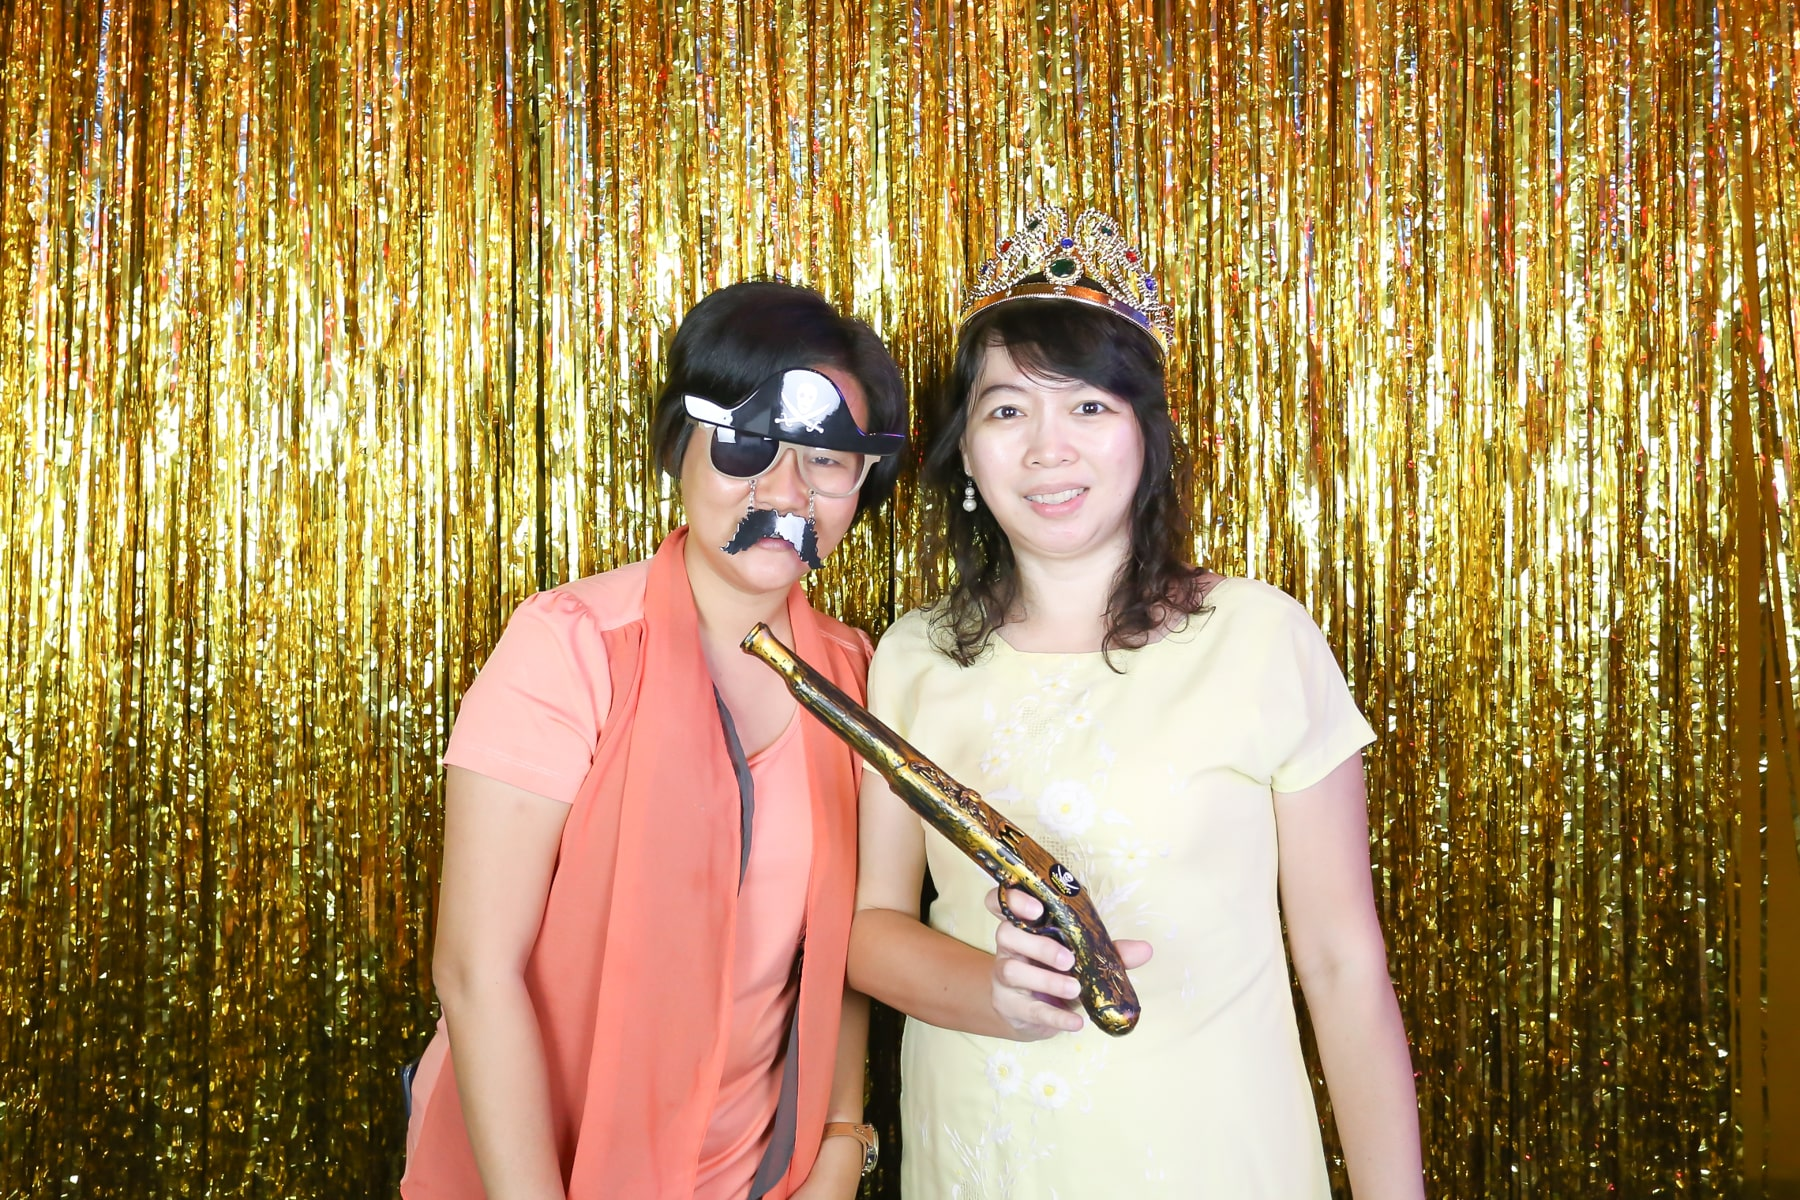 Sushivid+crunch+tagbooth+152